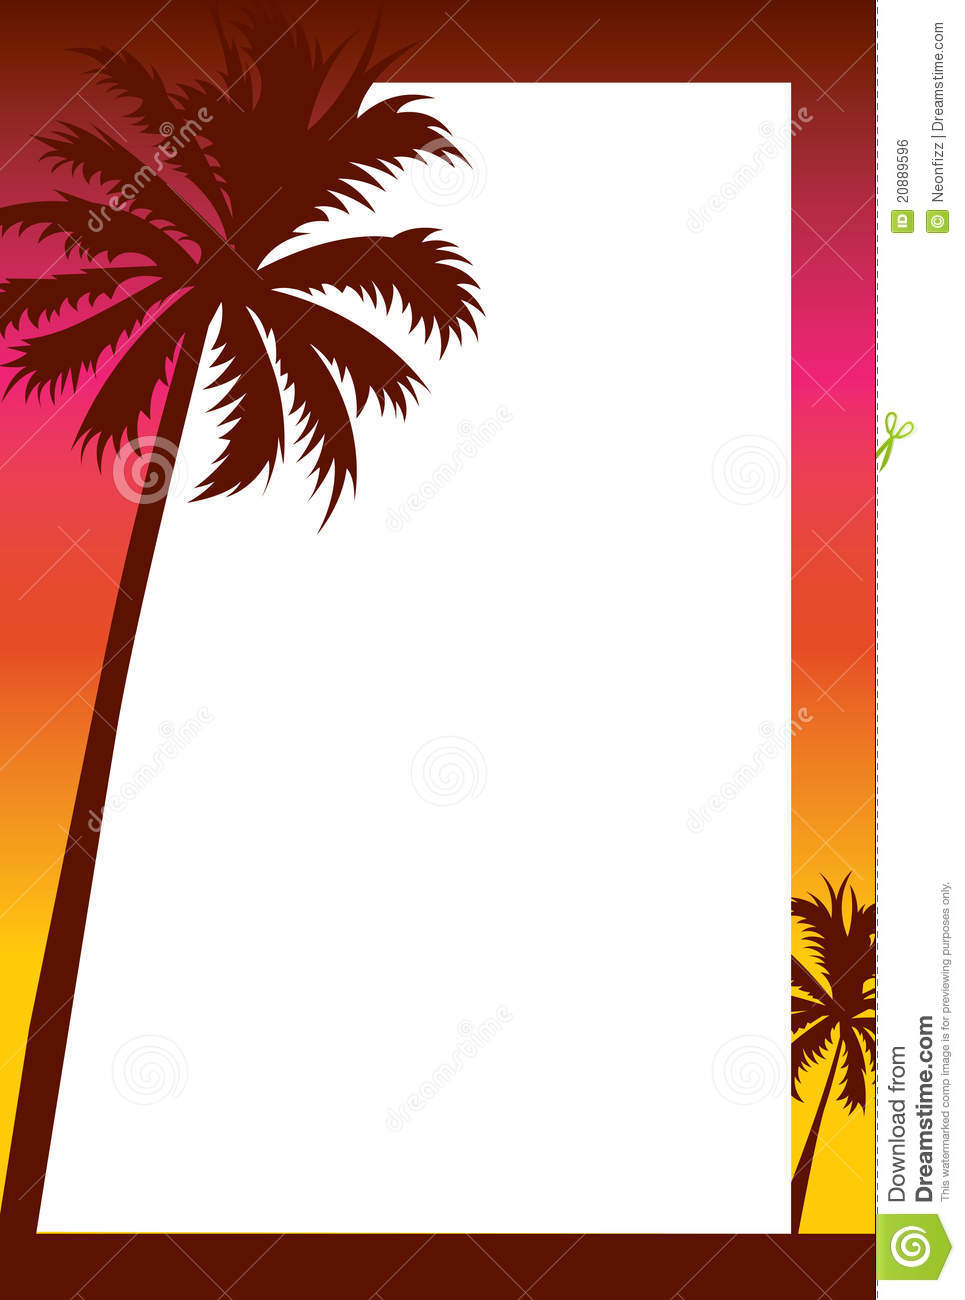 Beach Sunset Invitation Border